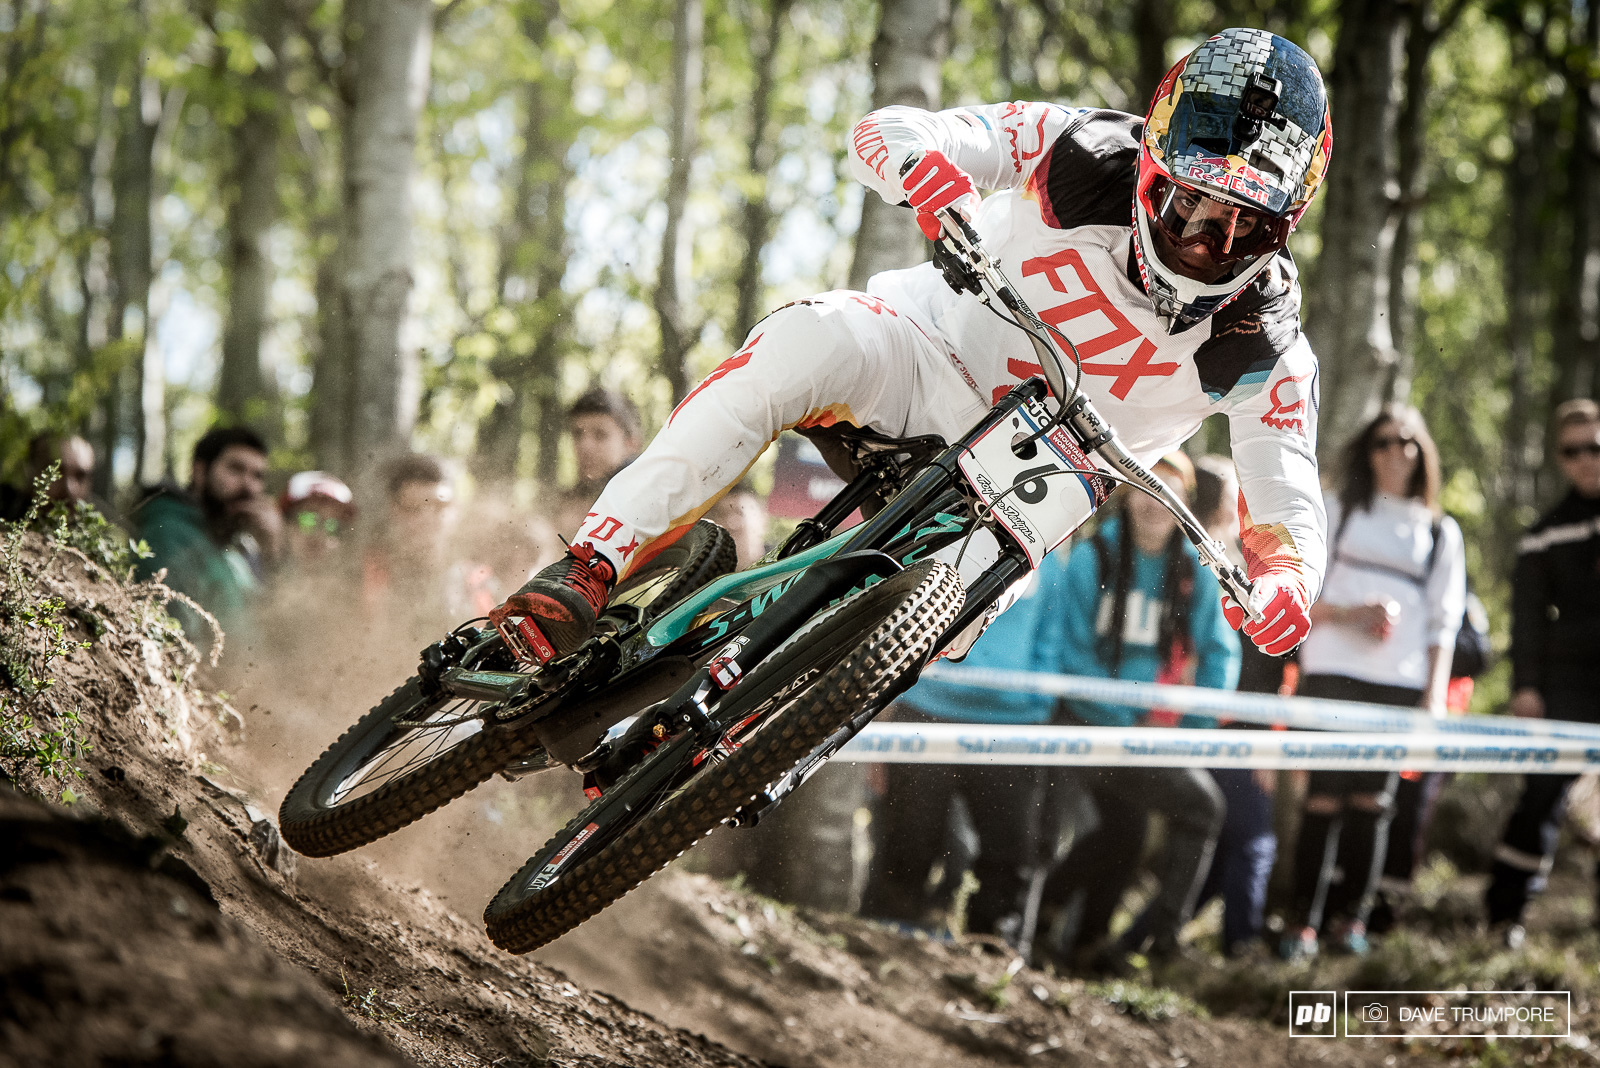 Loic Bruni has always been fast here and today he came 2nd just behind Loris Vergier.